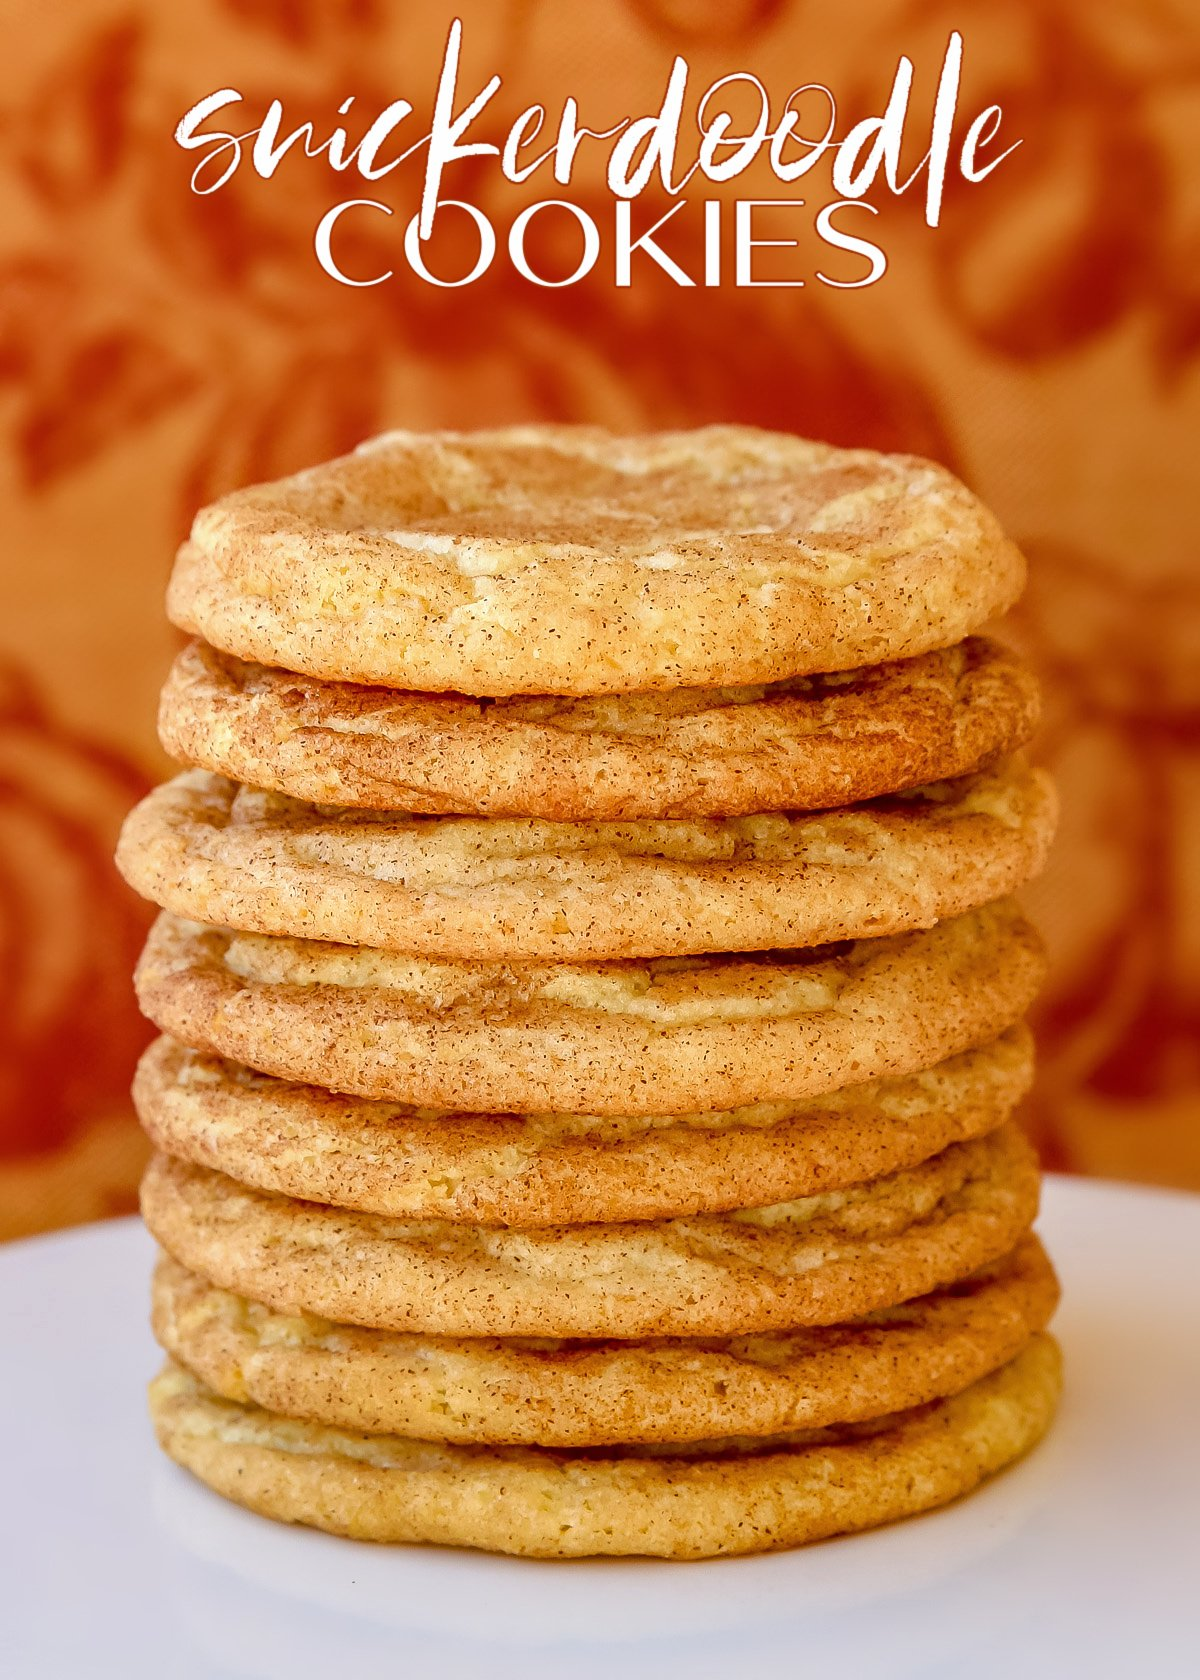 snickerdoodle cookies stacked high on white cake stand with fabric background and text overlay